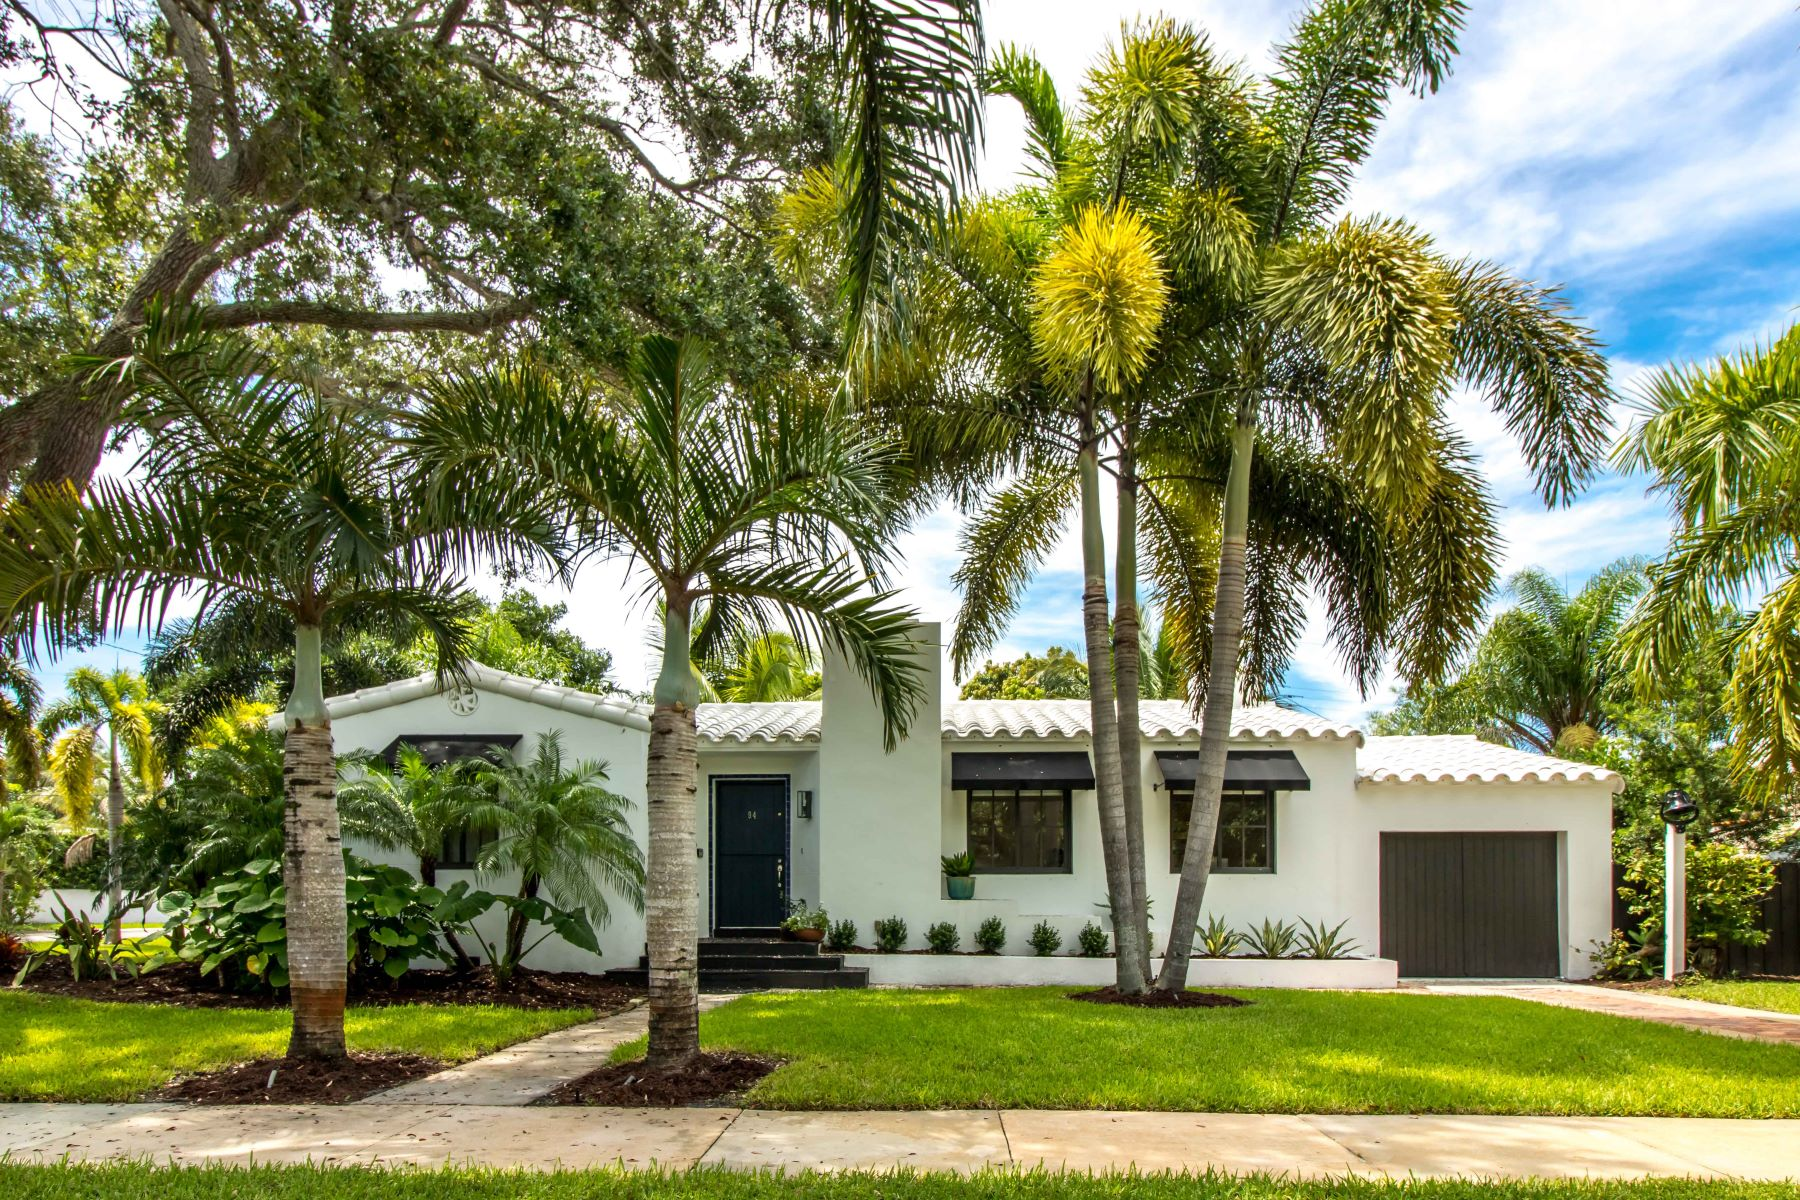 Single Family Home for Sale at 94 Ne 102nd St 94 Ne102nd St Miami Shores, Florida 33138 United States